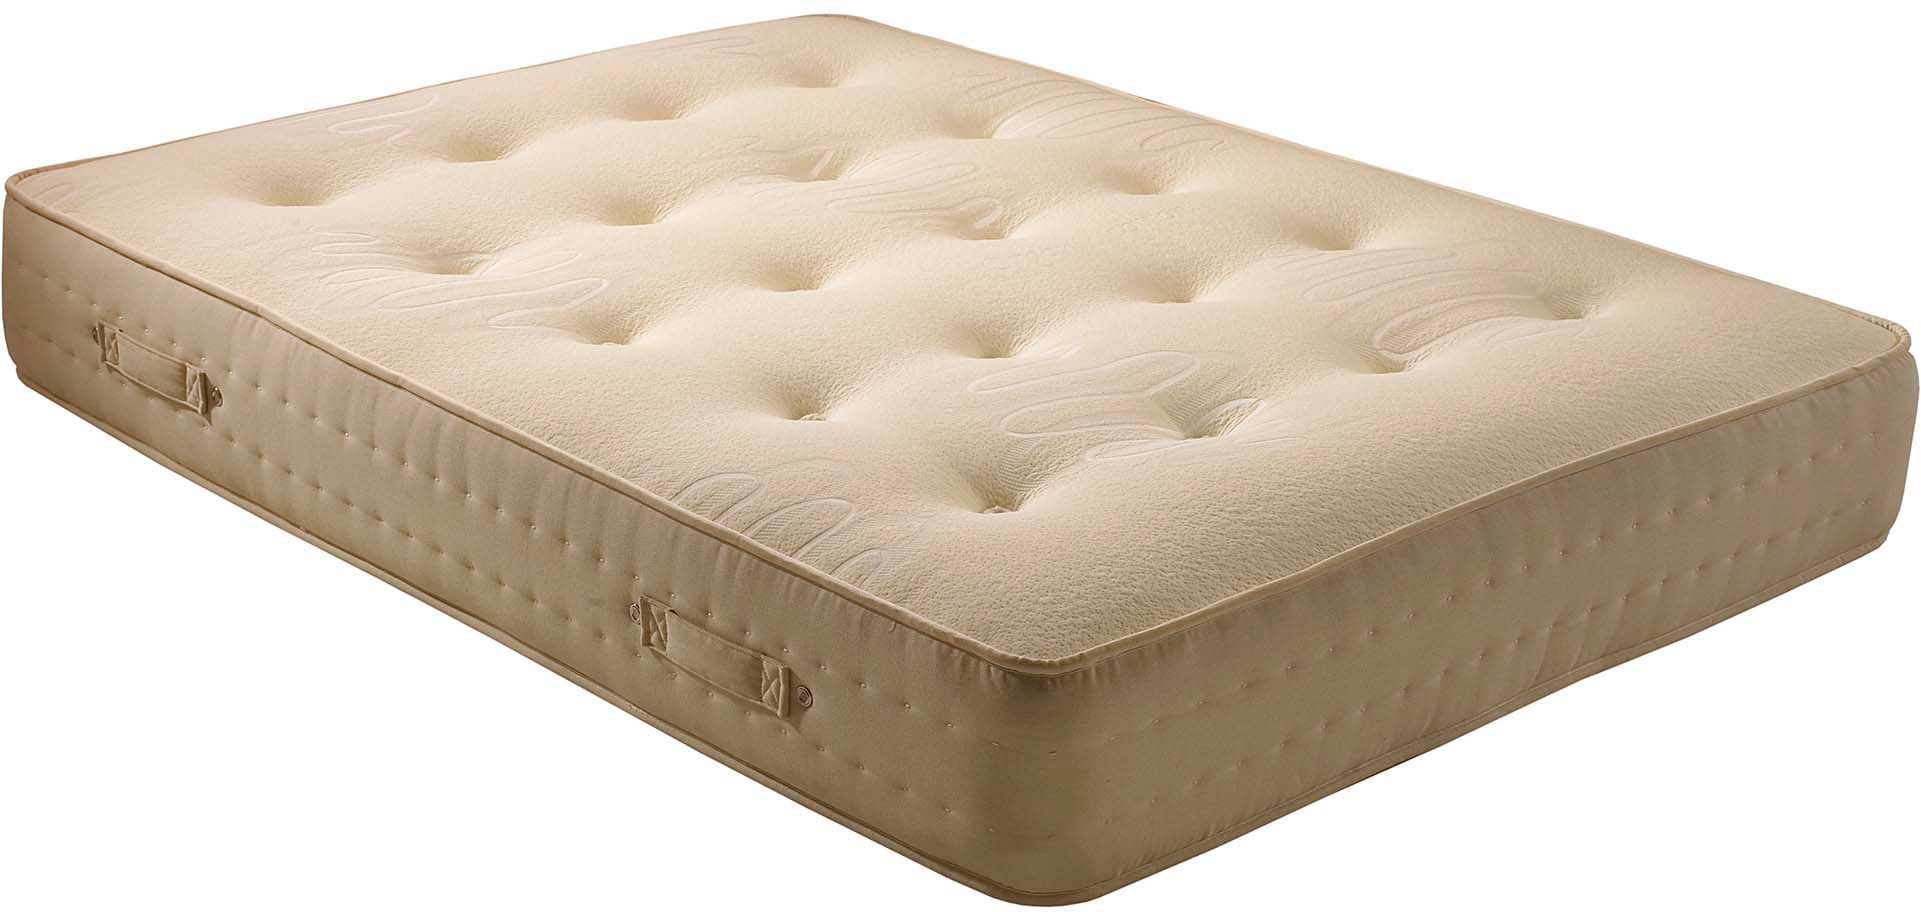 Spring Mattress, Bed, Mattress Png Transparent Images  2826